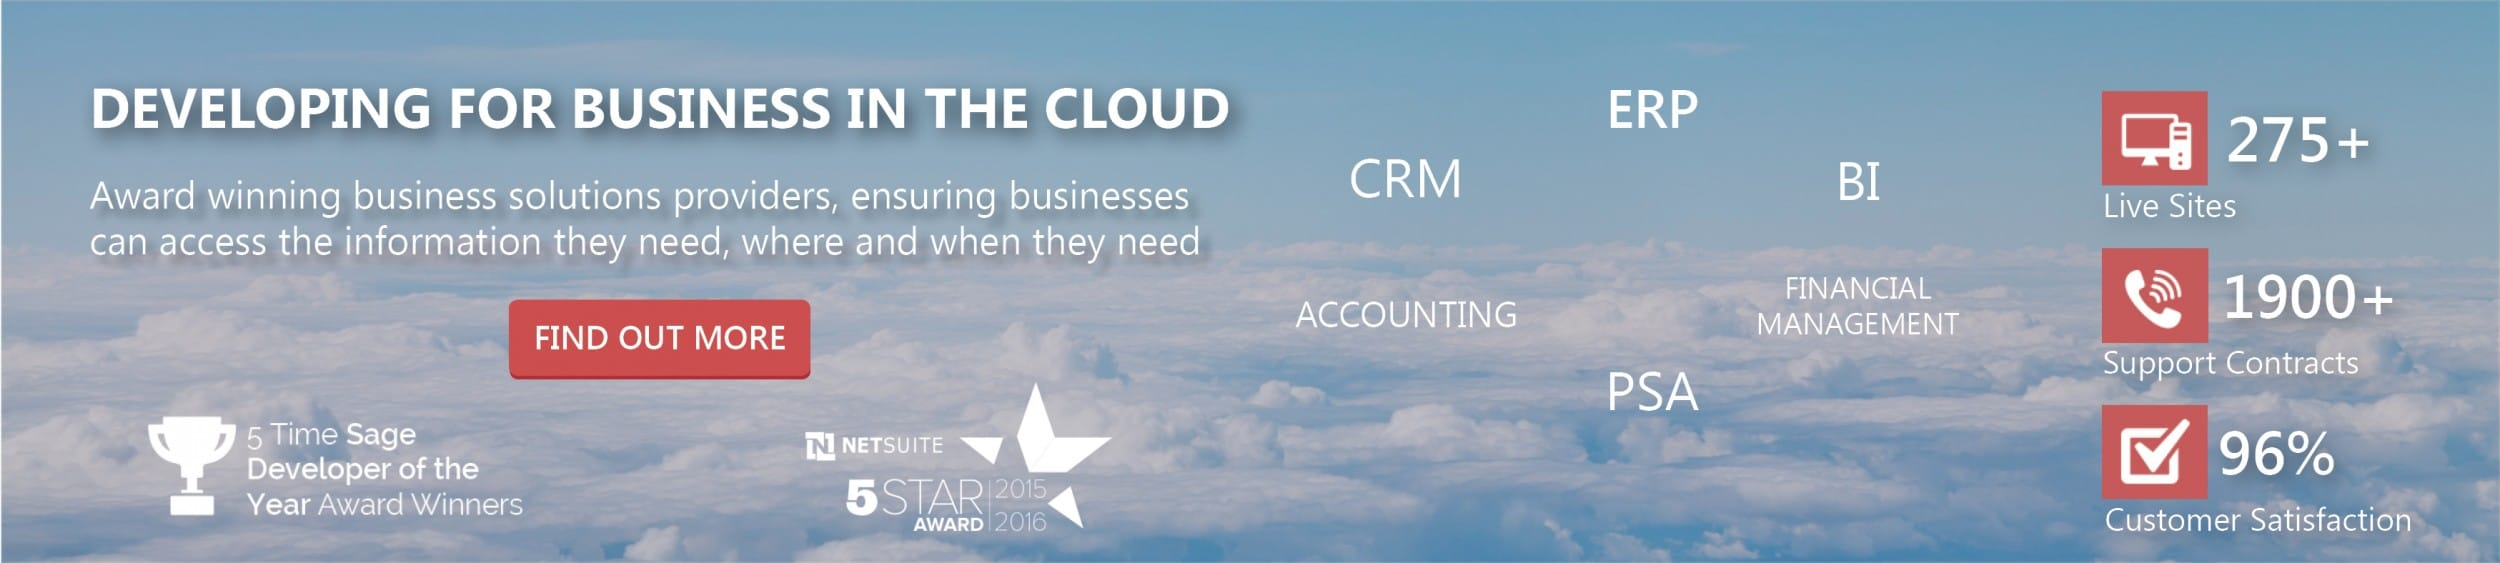 Eureka Solutions Developing for business in the cloud